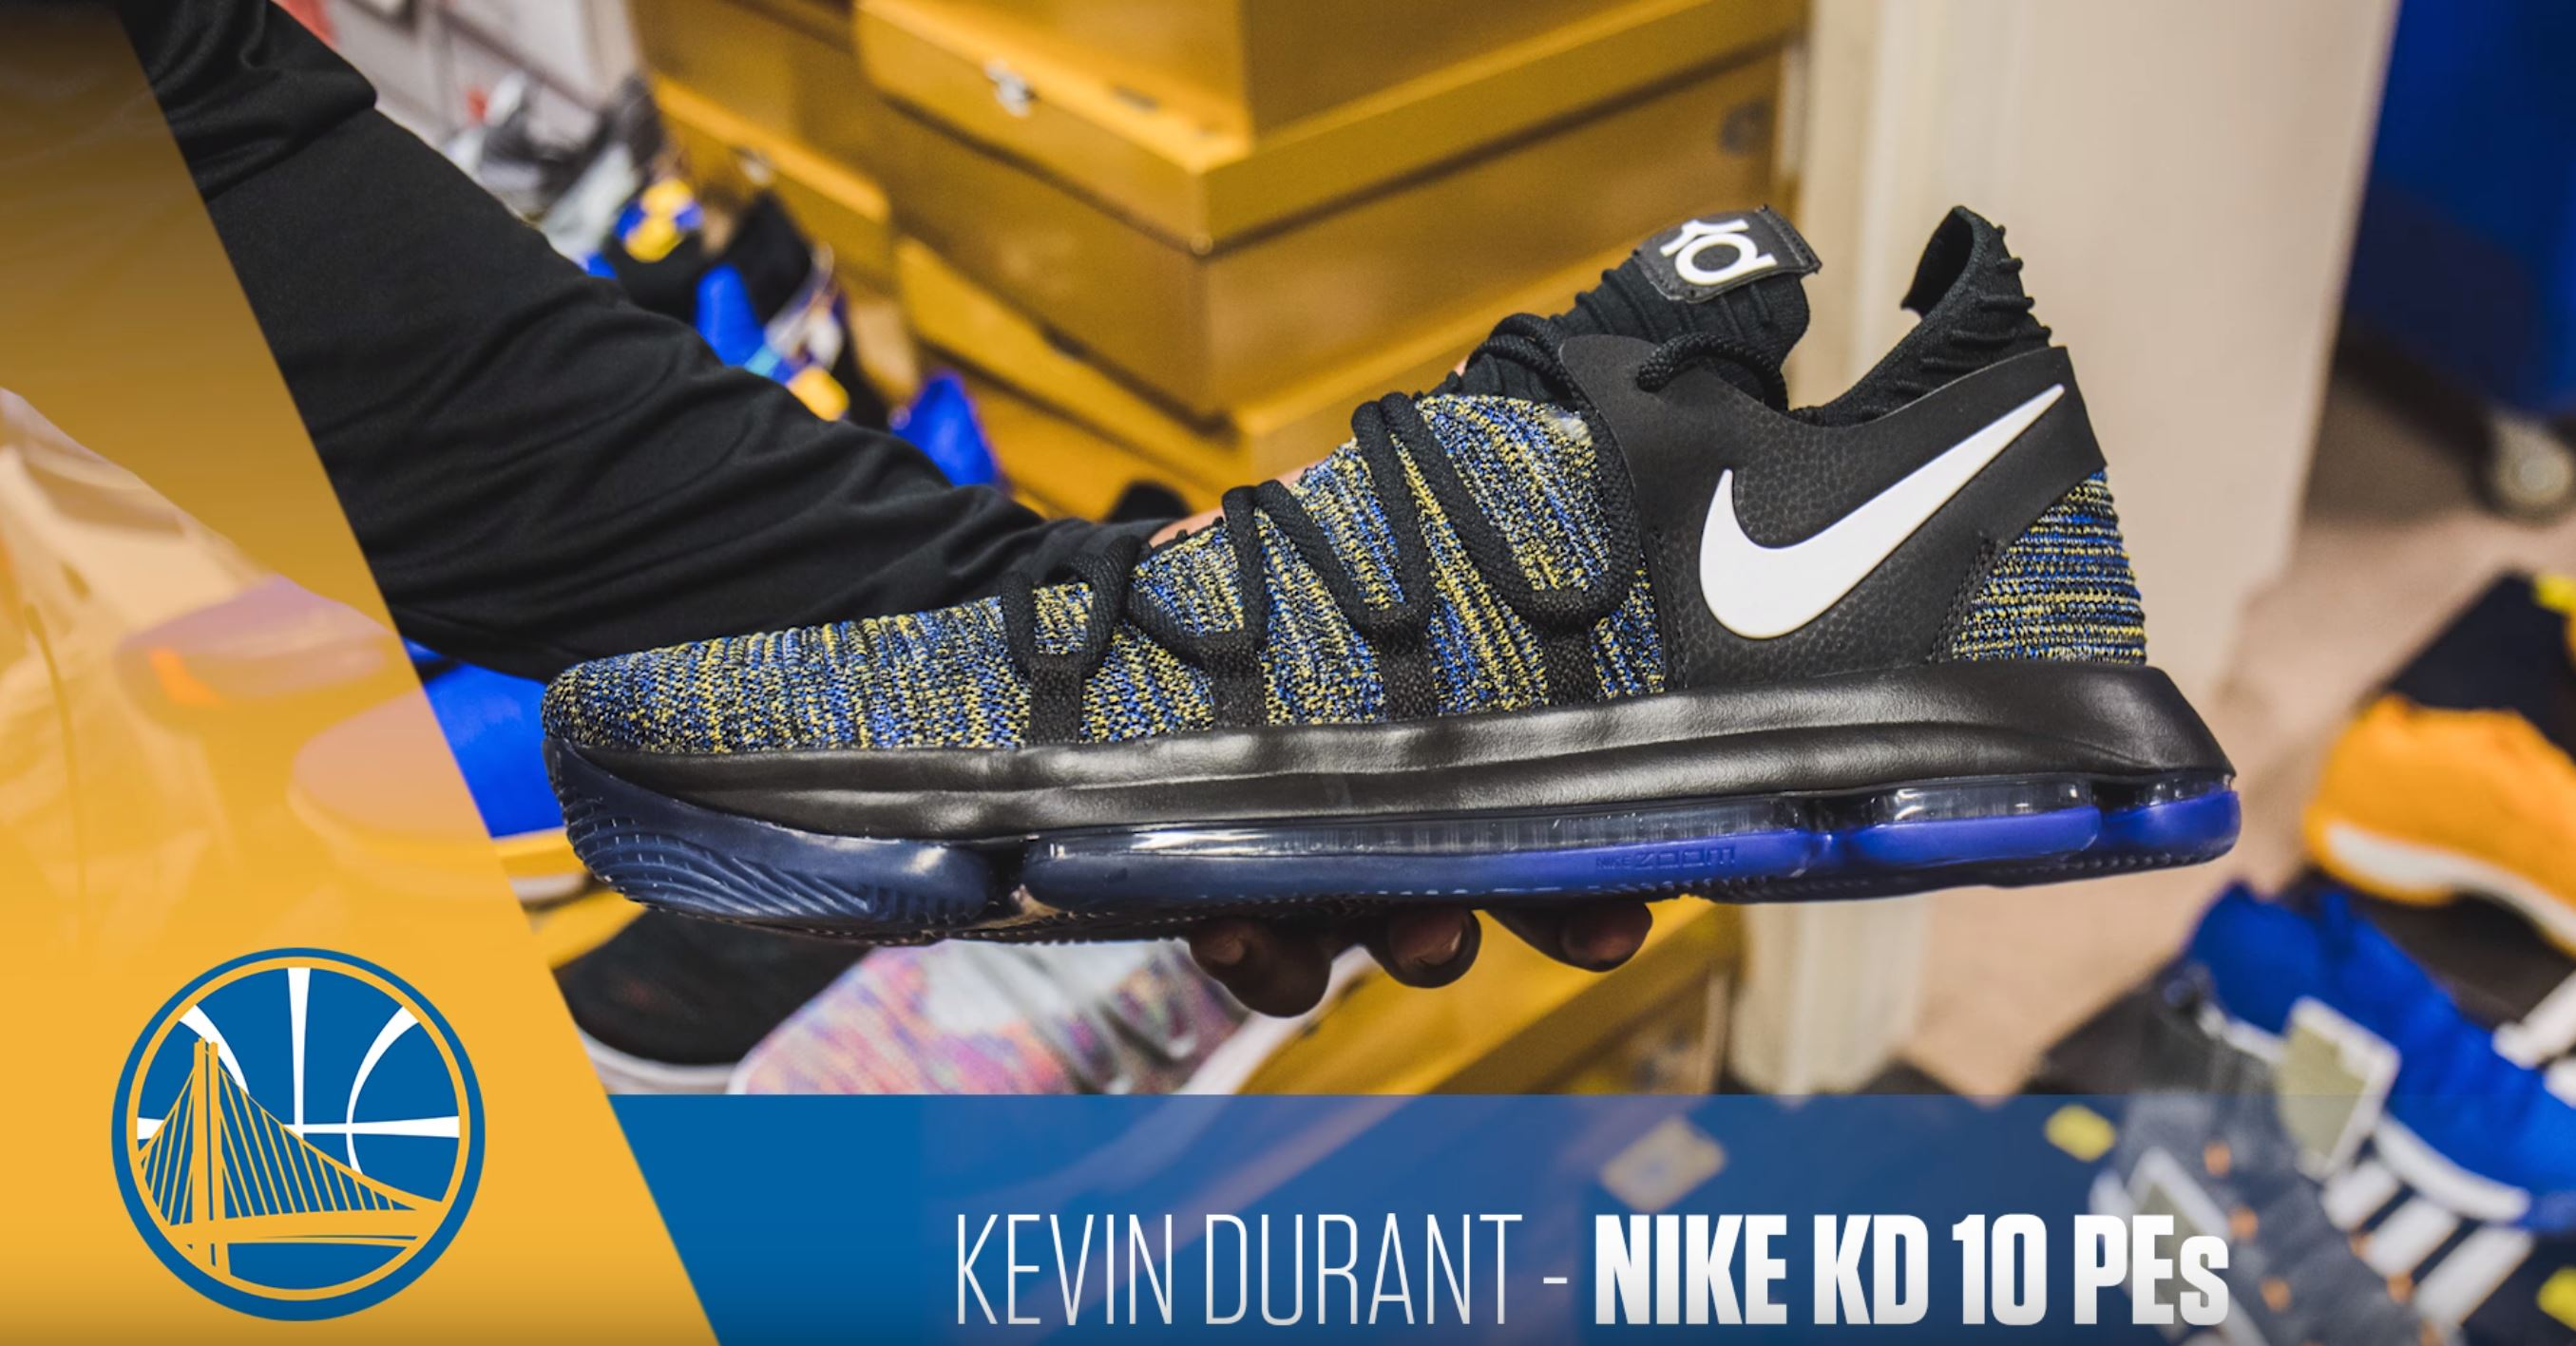 kevin durant nike kd 10 PE